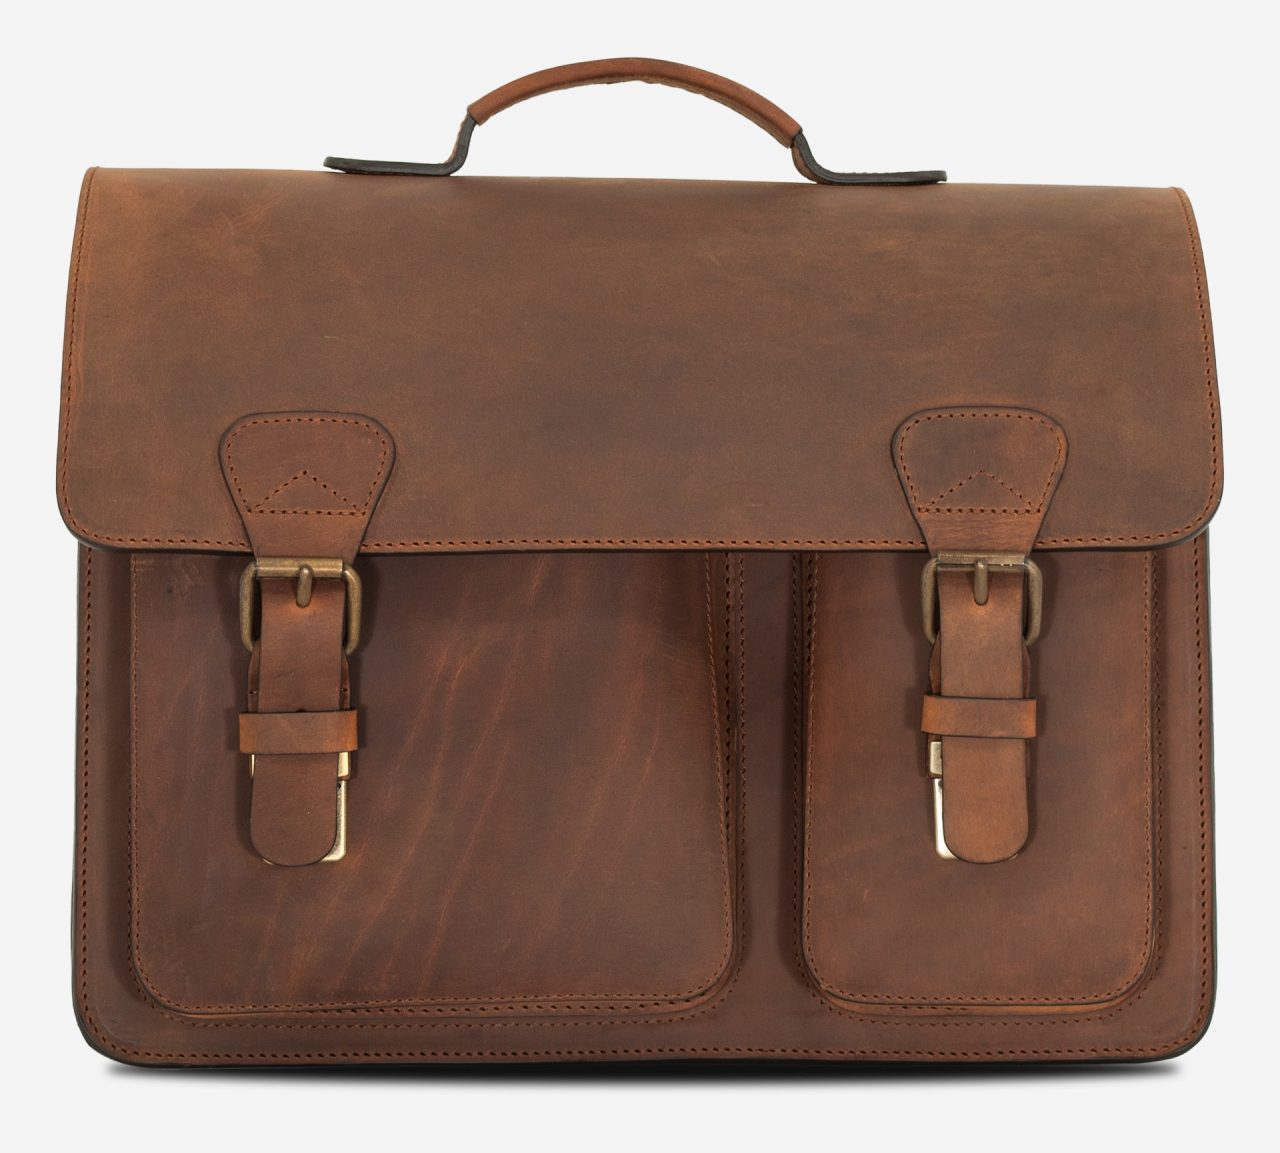 Front view of brown leather satchel briefcase with asymmetric front pockets.